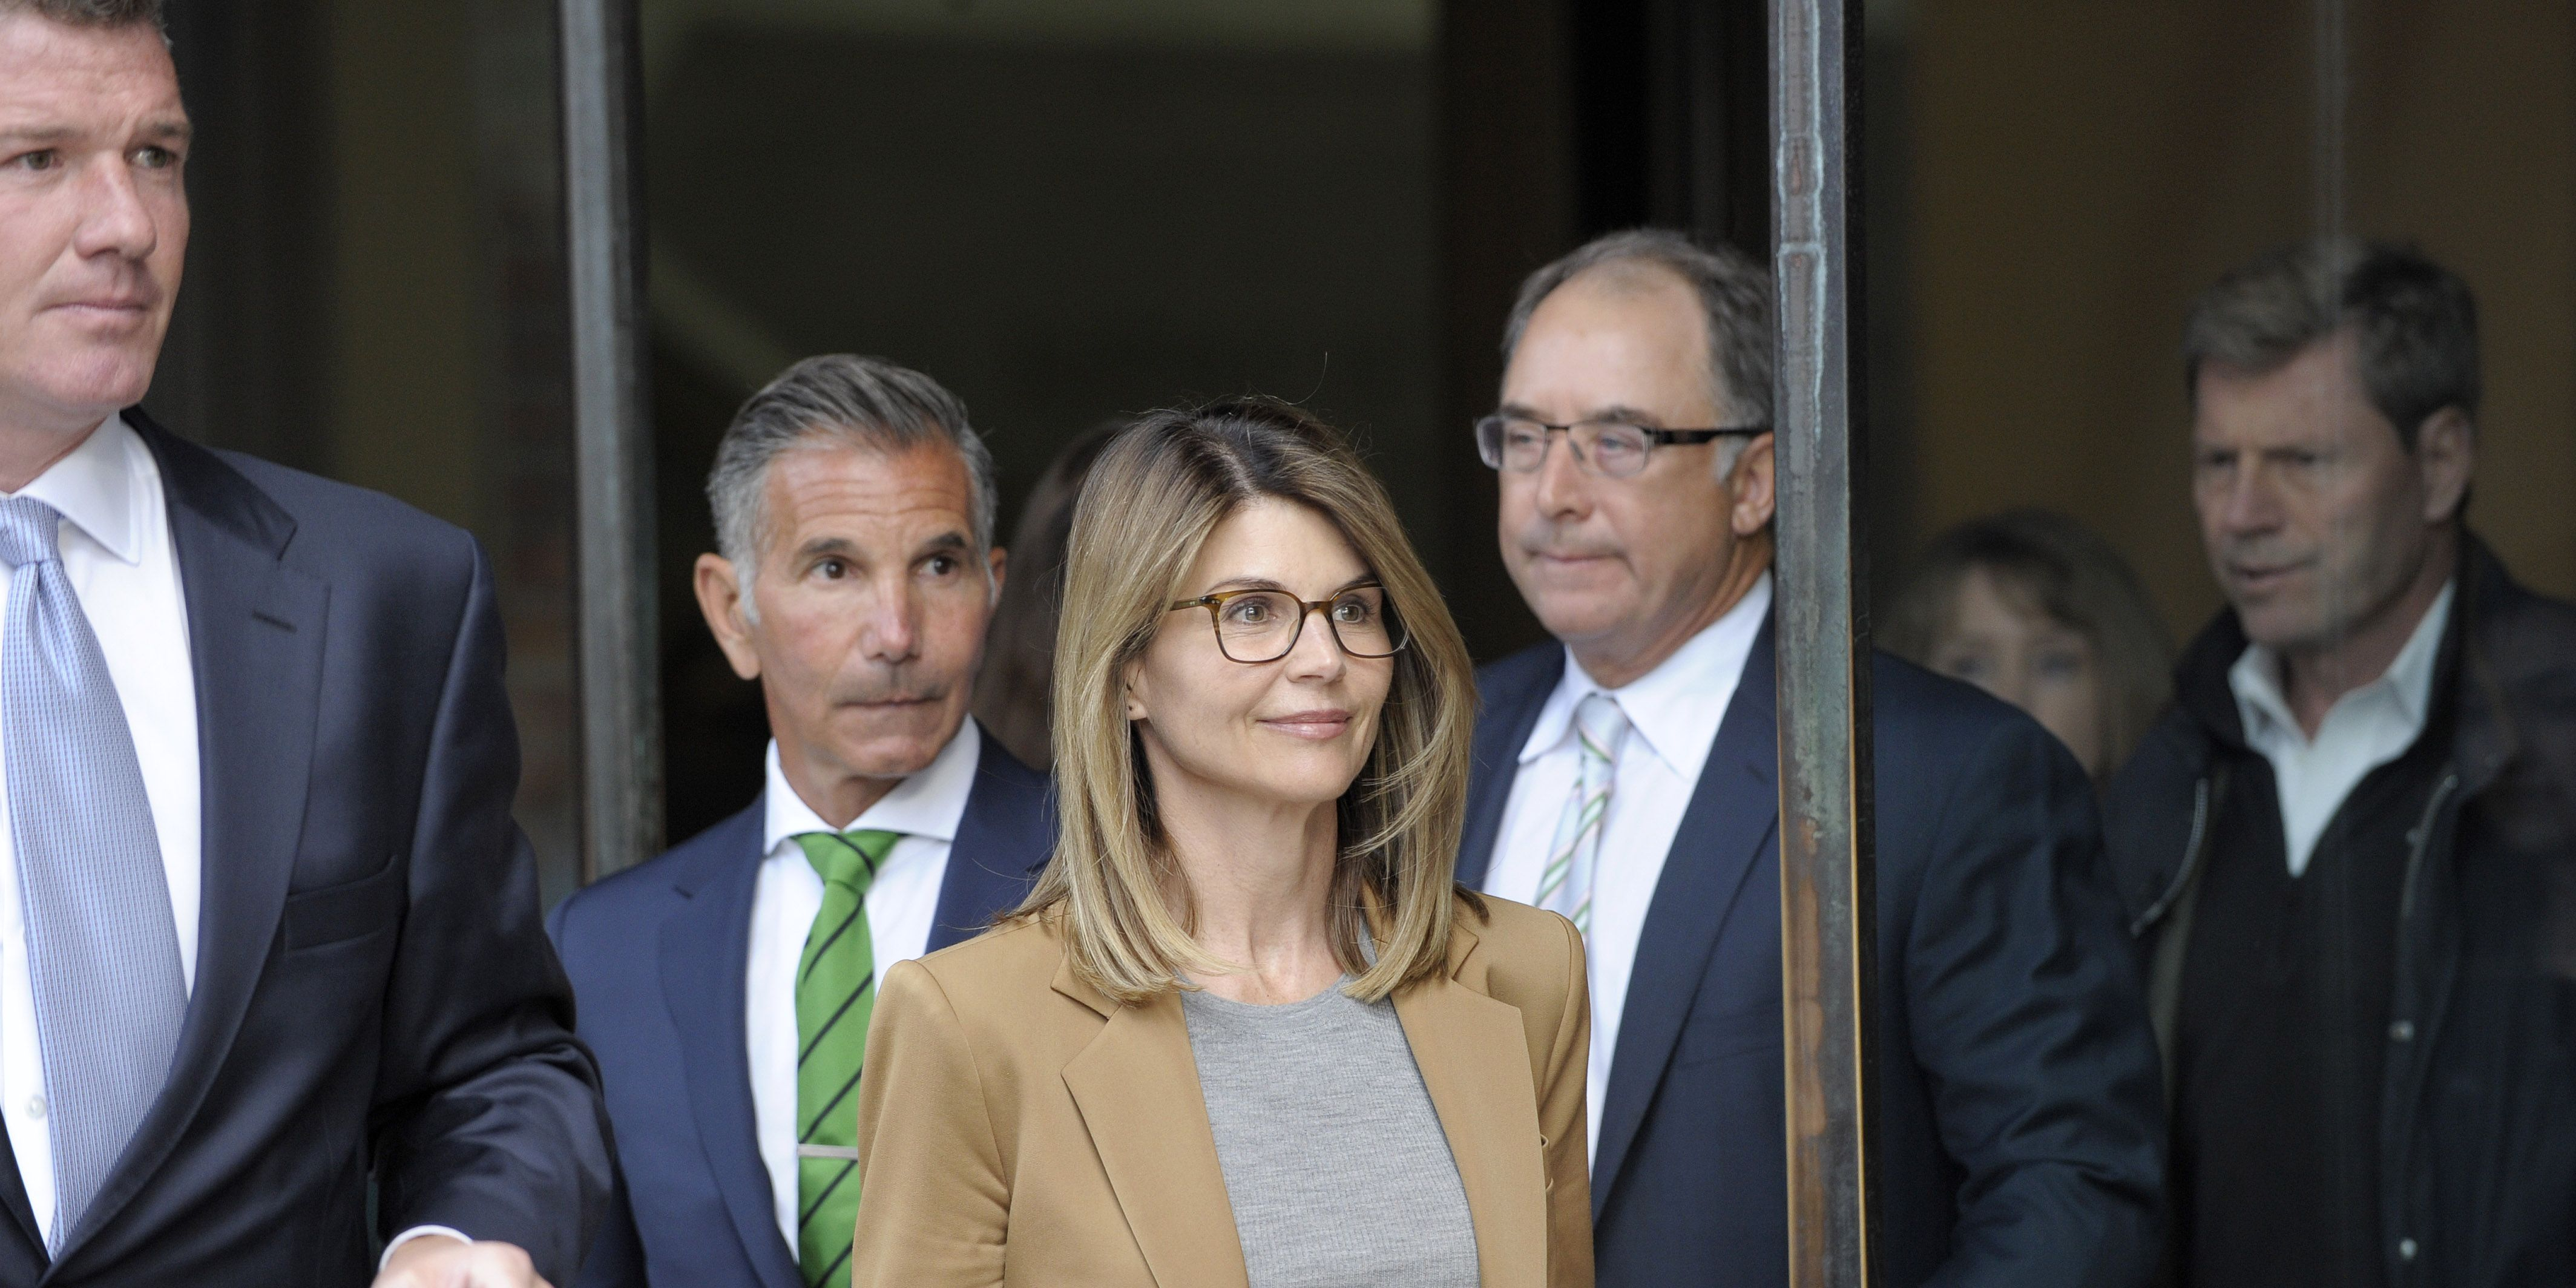 Lori Loughlin's Marriage Is Reportedly Feeling Tension Following College Admissions Scandal